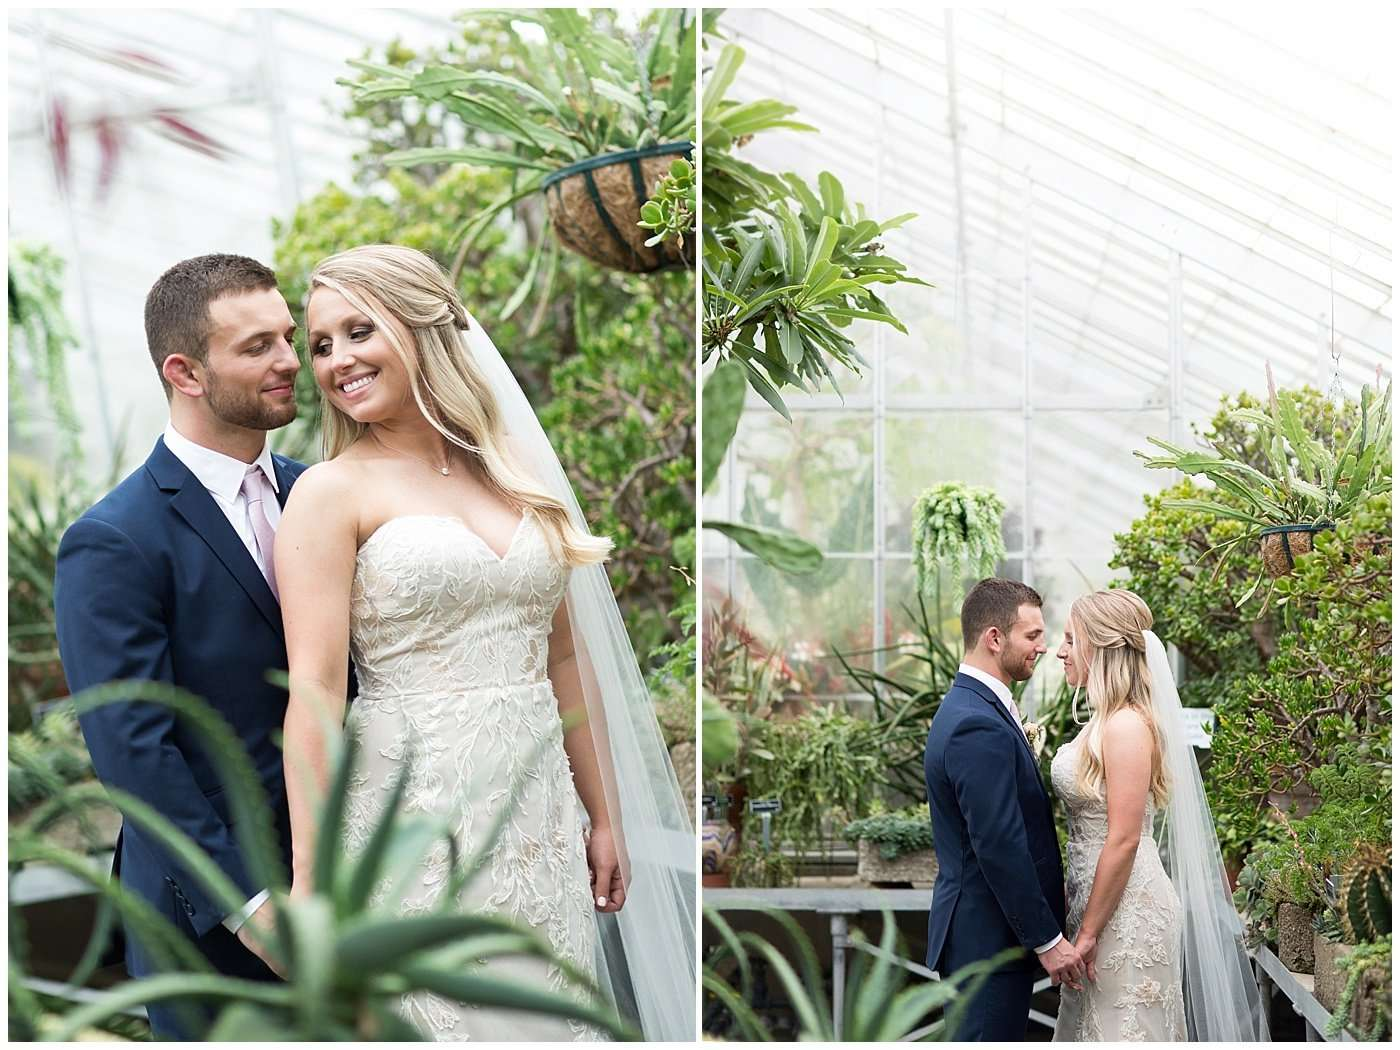 Jake & Abbie | A Swoon-Worthy Wedding at Breathtaking Garden Estate 152